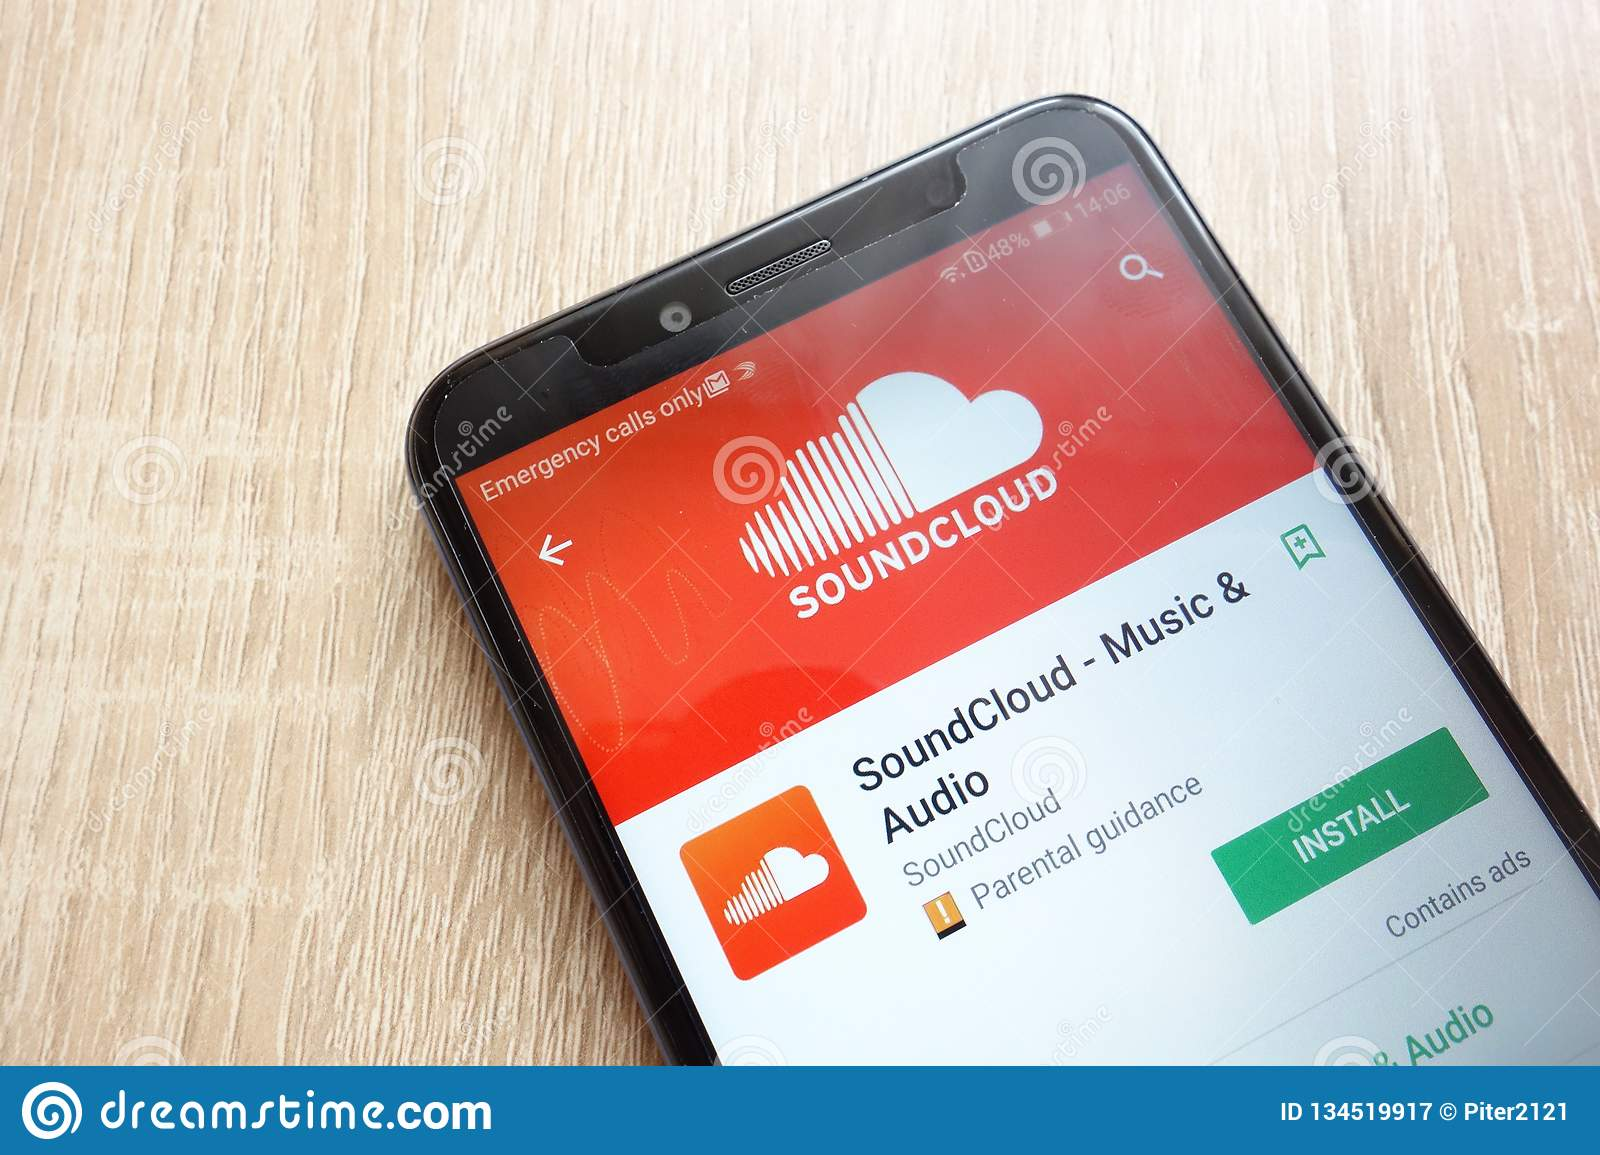 SoundCloud App On Google Play Store Website Displayed On